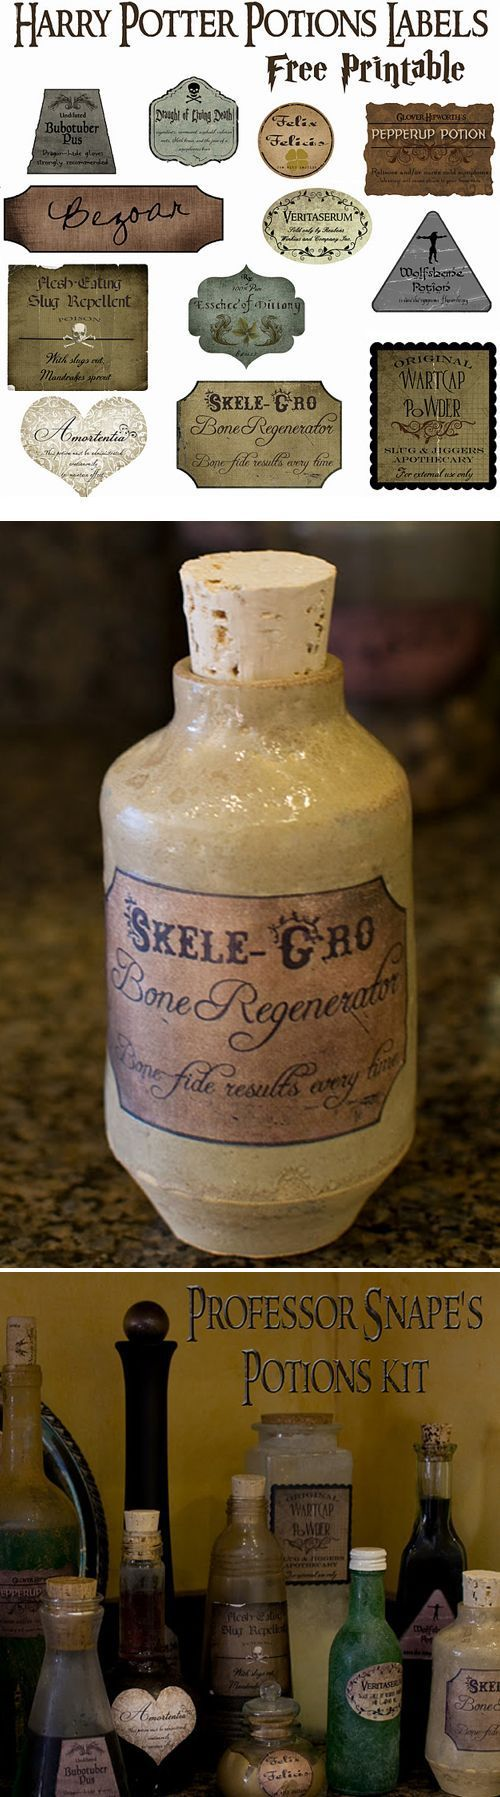 "Free printable Harry Potter potion labels.  I wonder if people would still steal my vanilla extract in the pan house if it were labeled ""draught of living death""?:"